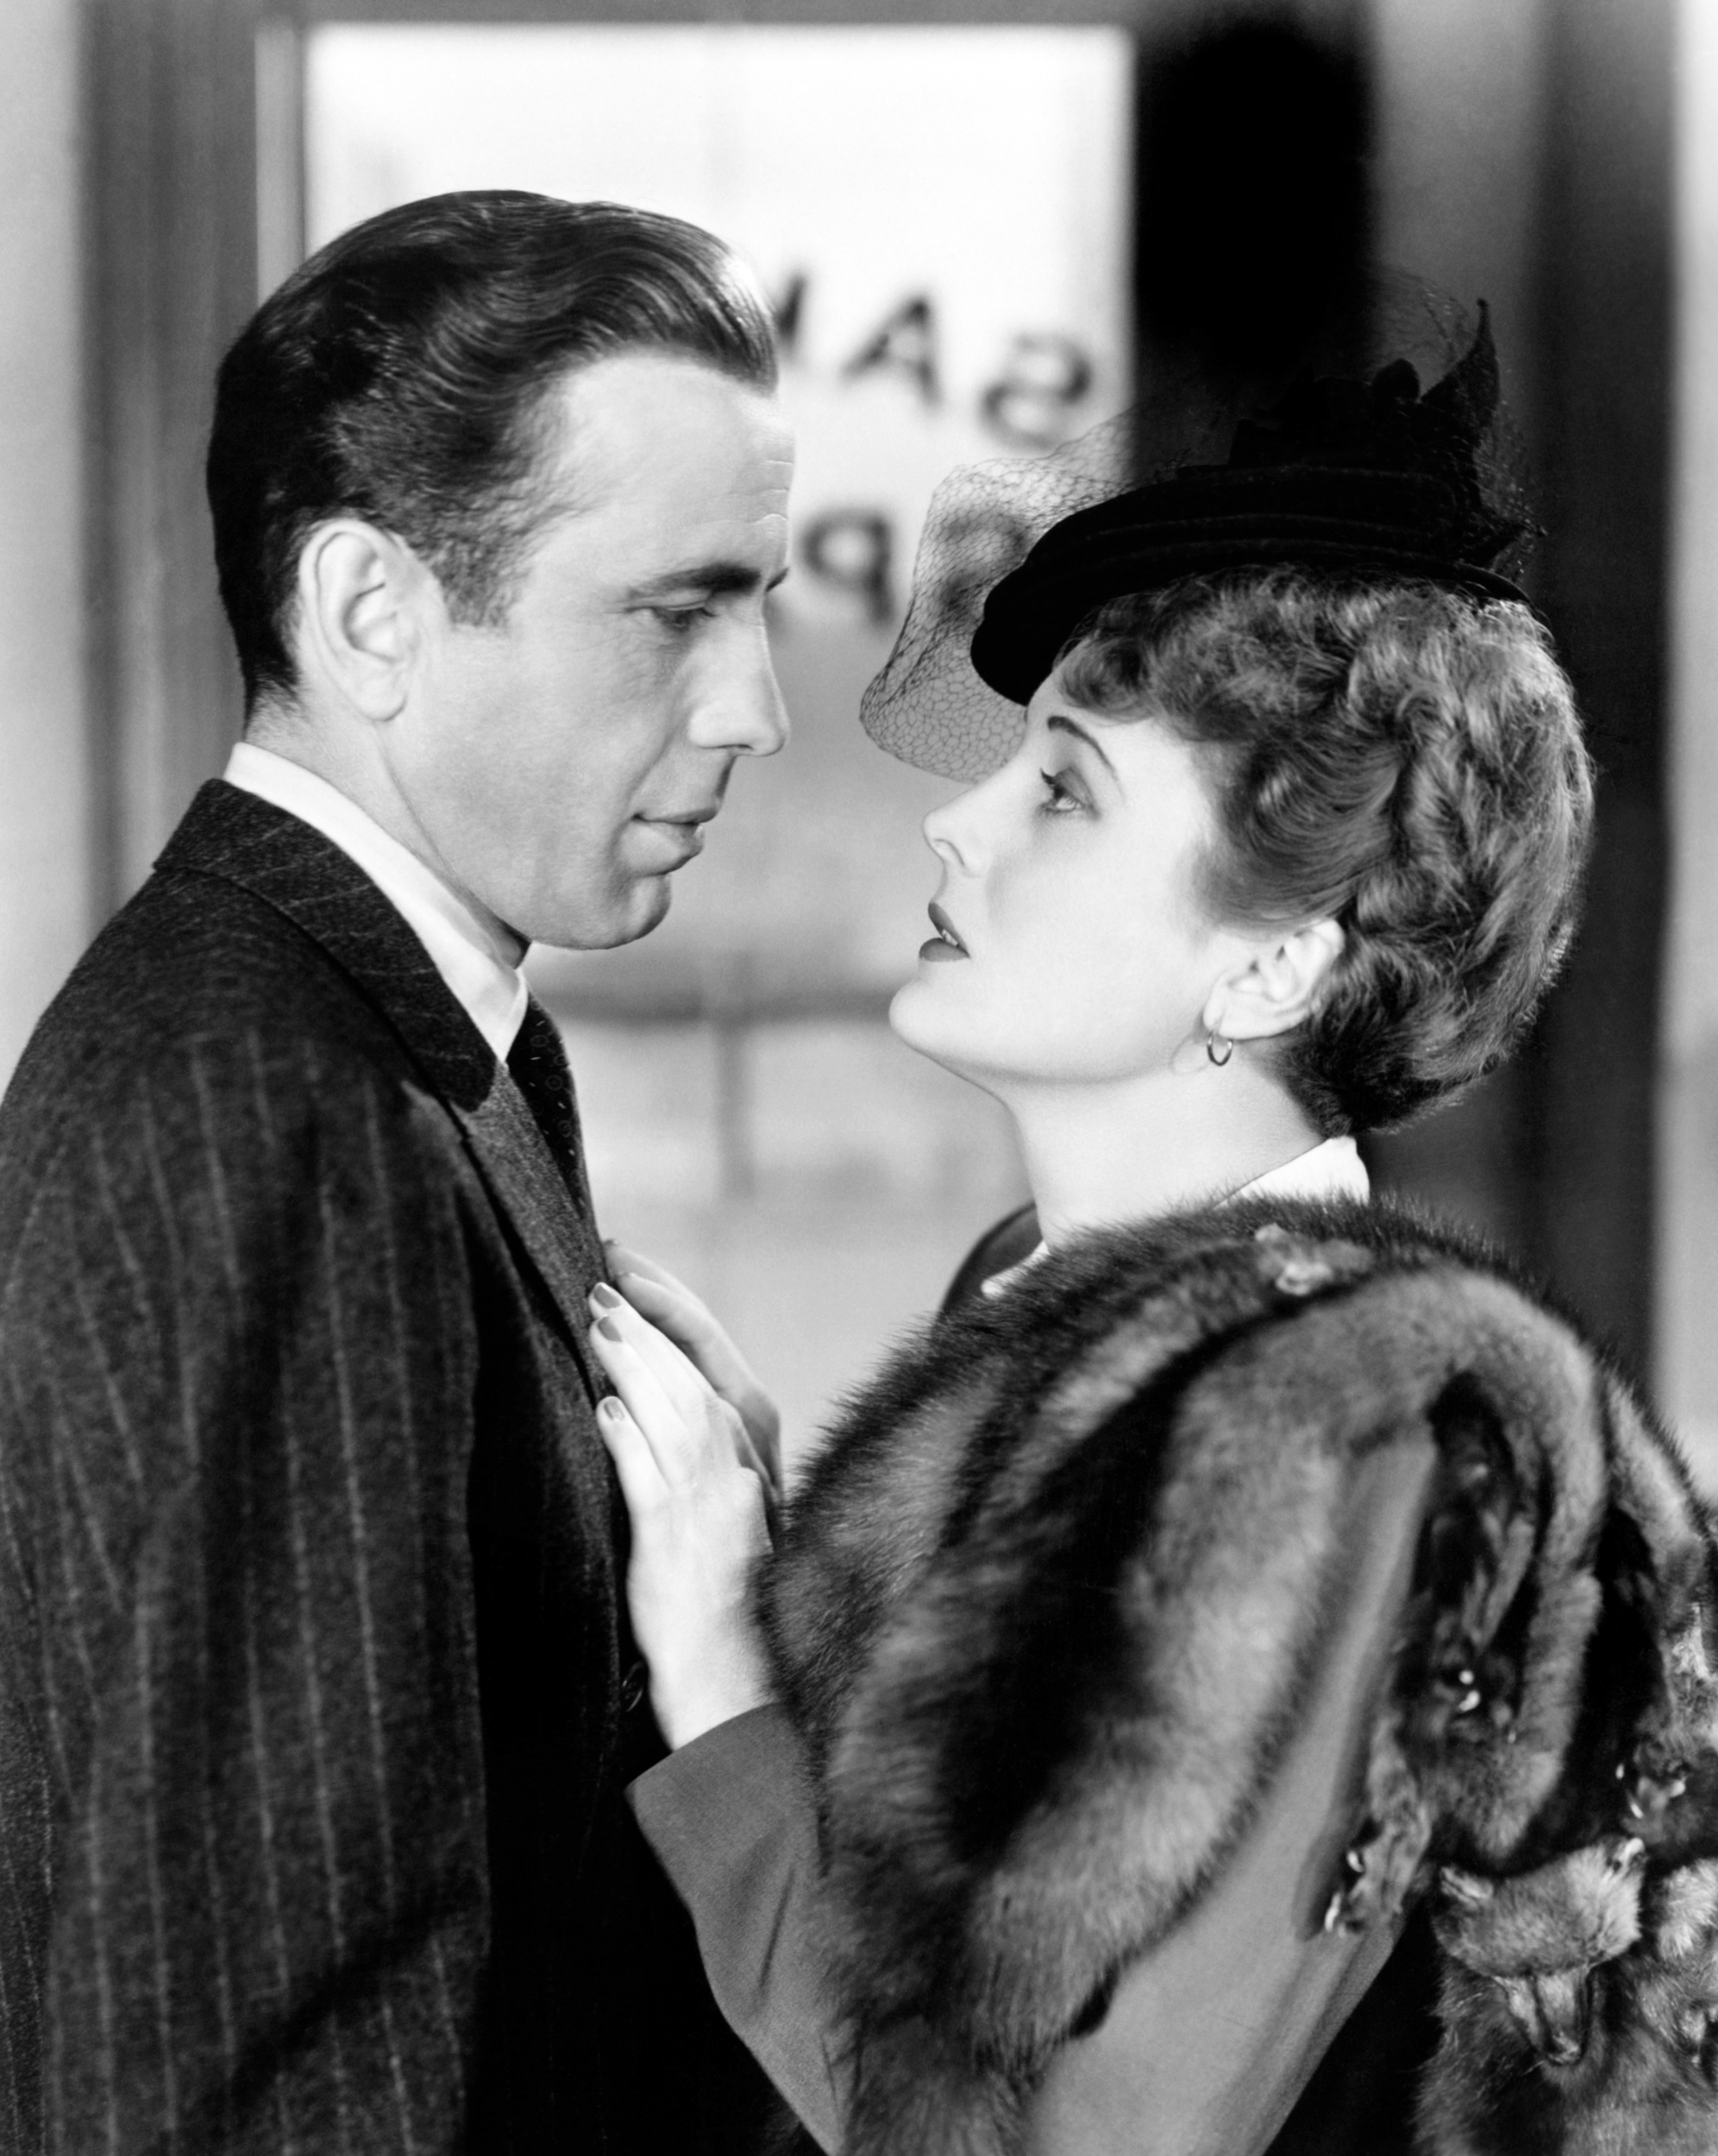 Mary Astor and Humphrey Bogart in The Maltese Falcon, 1941